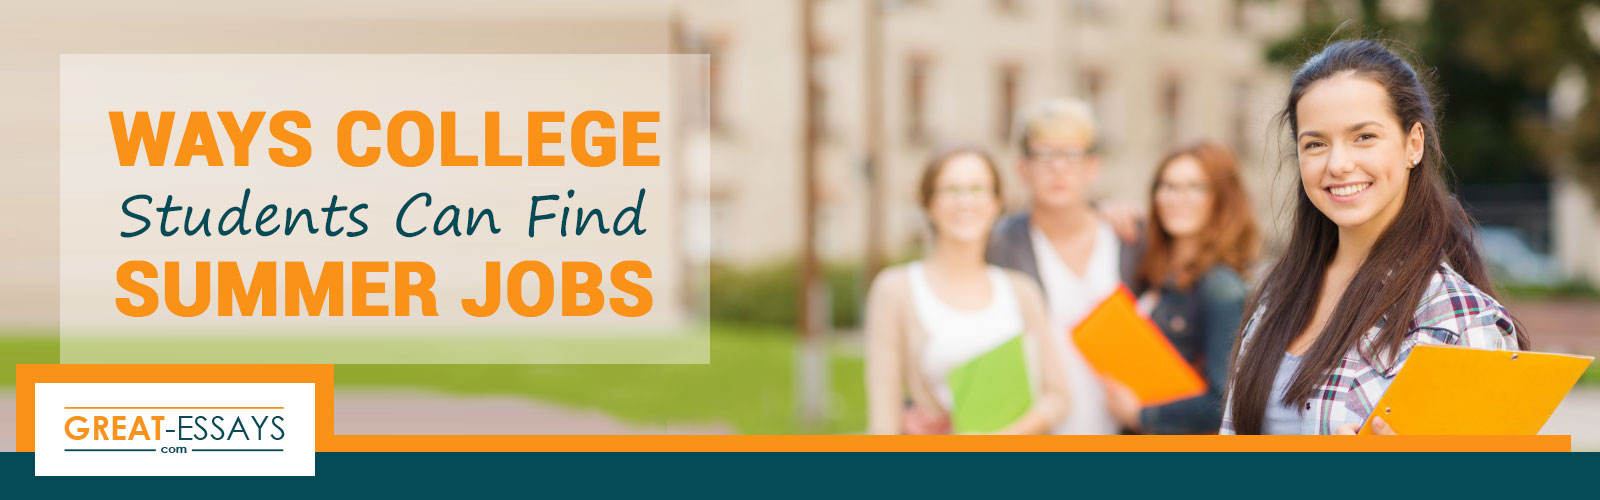 Ways-College-Students-Can-Find-Summer-Jobs